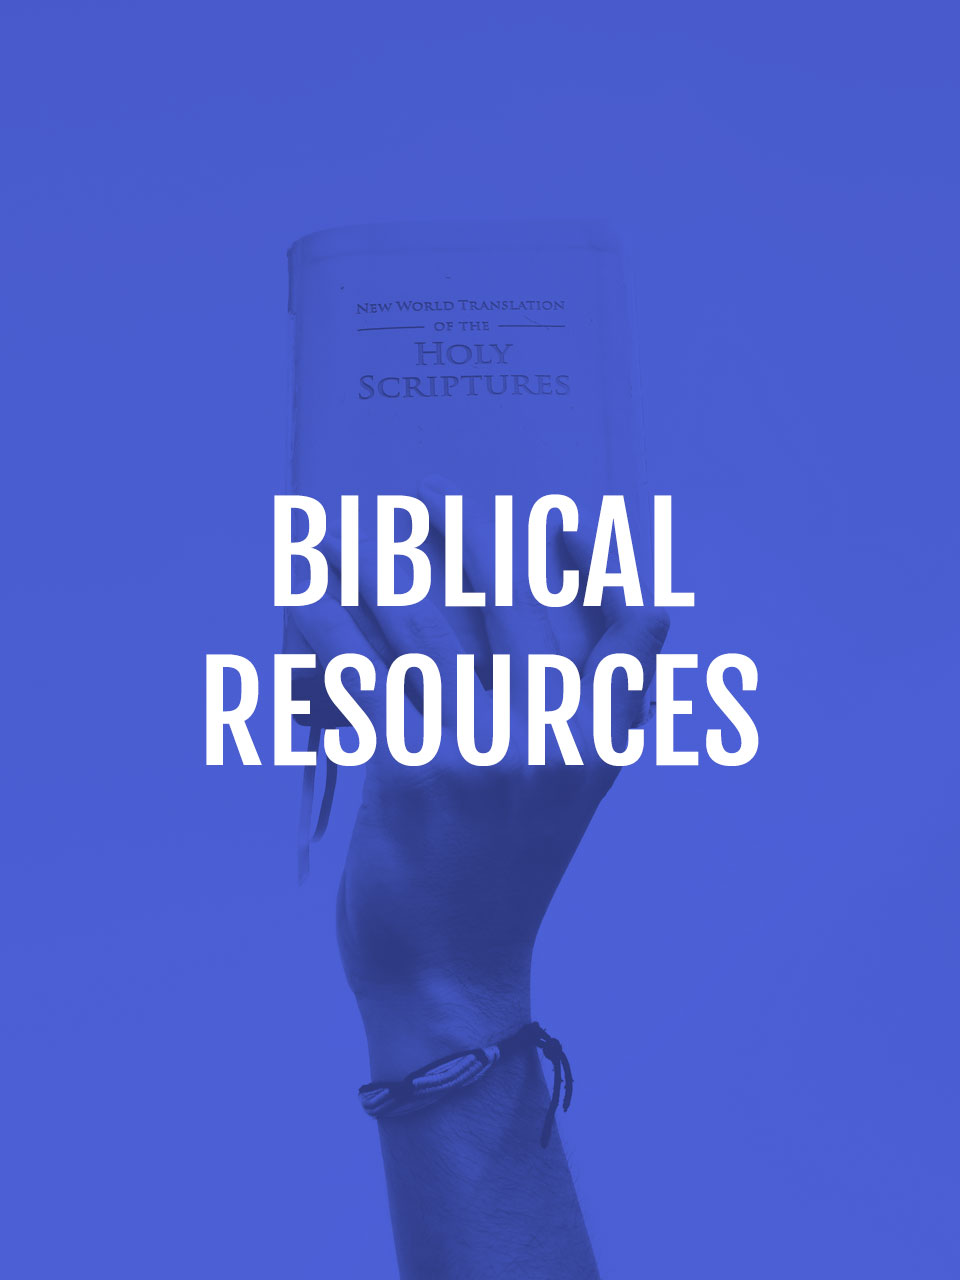 Biblical Resources